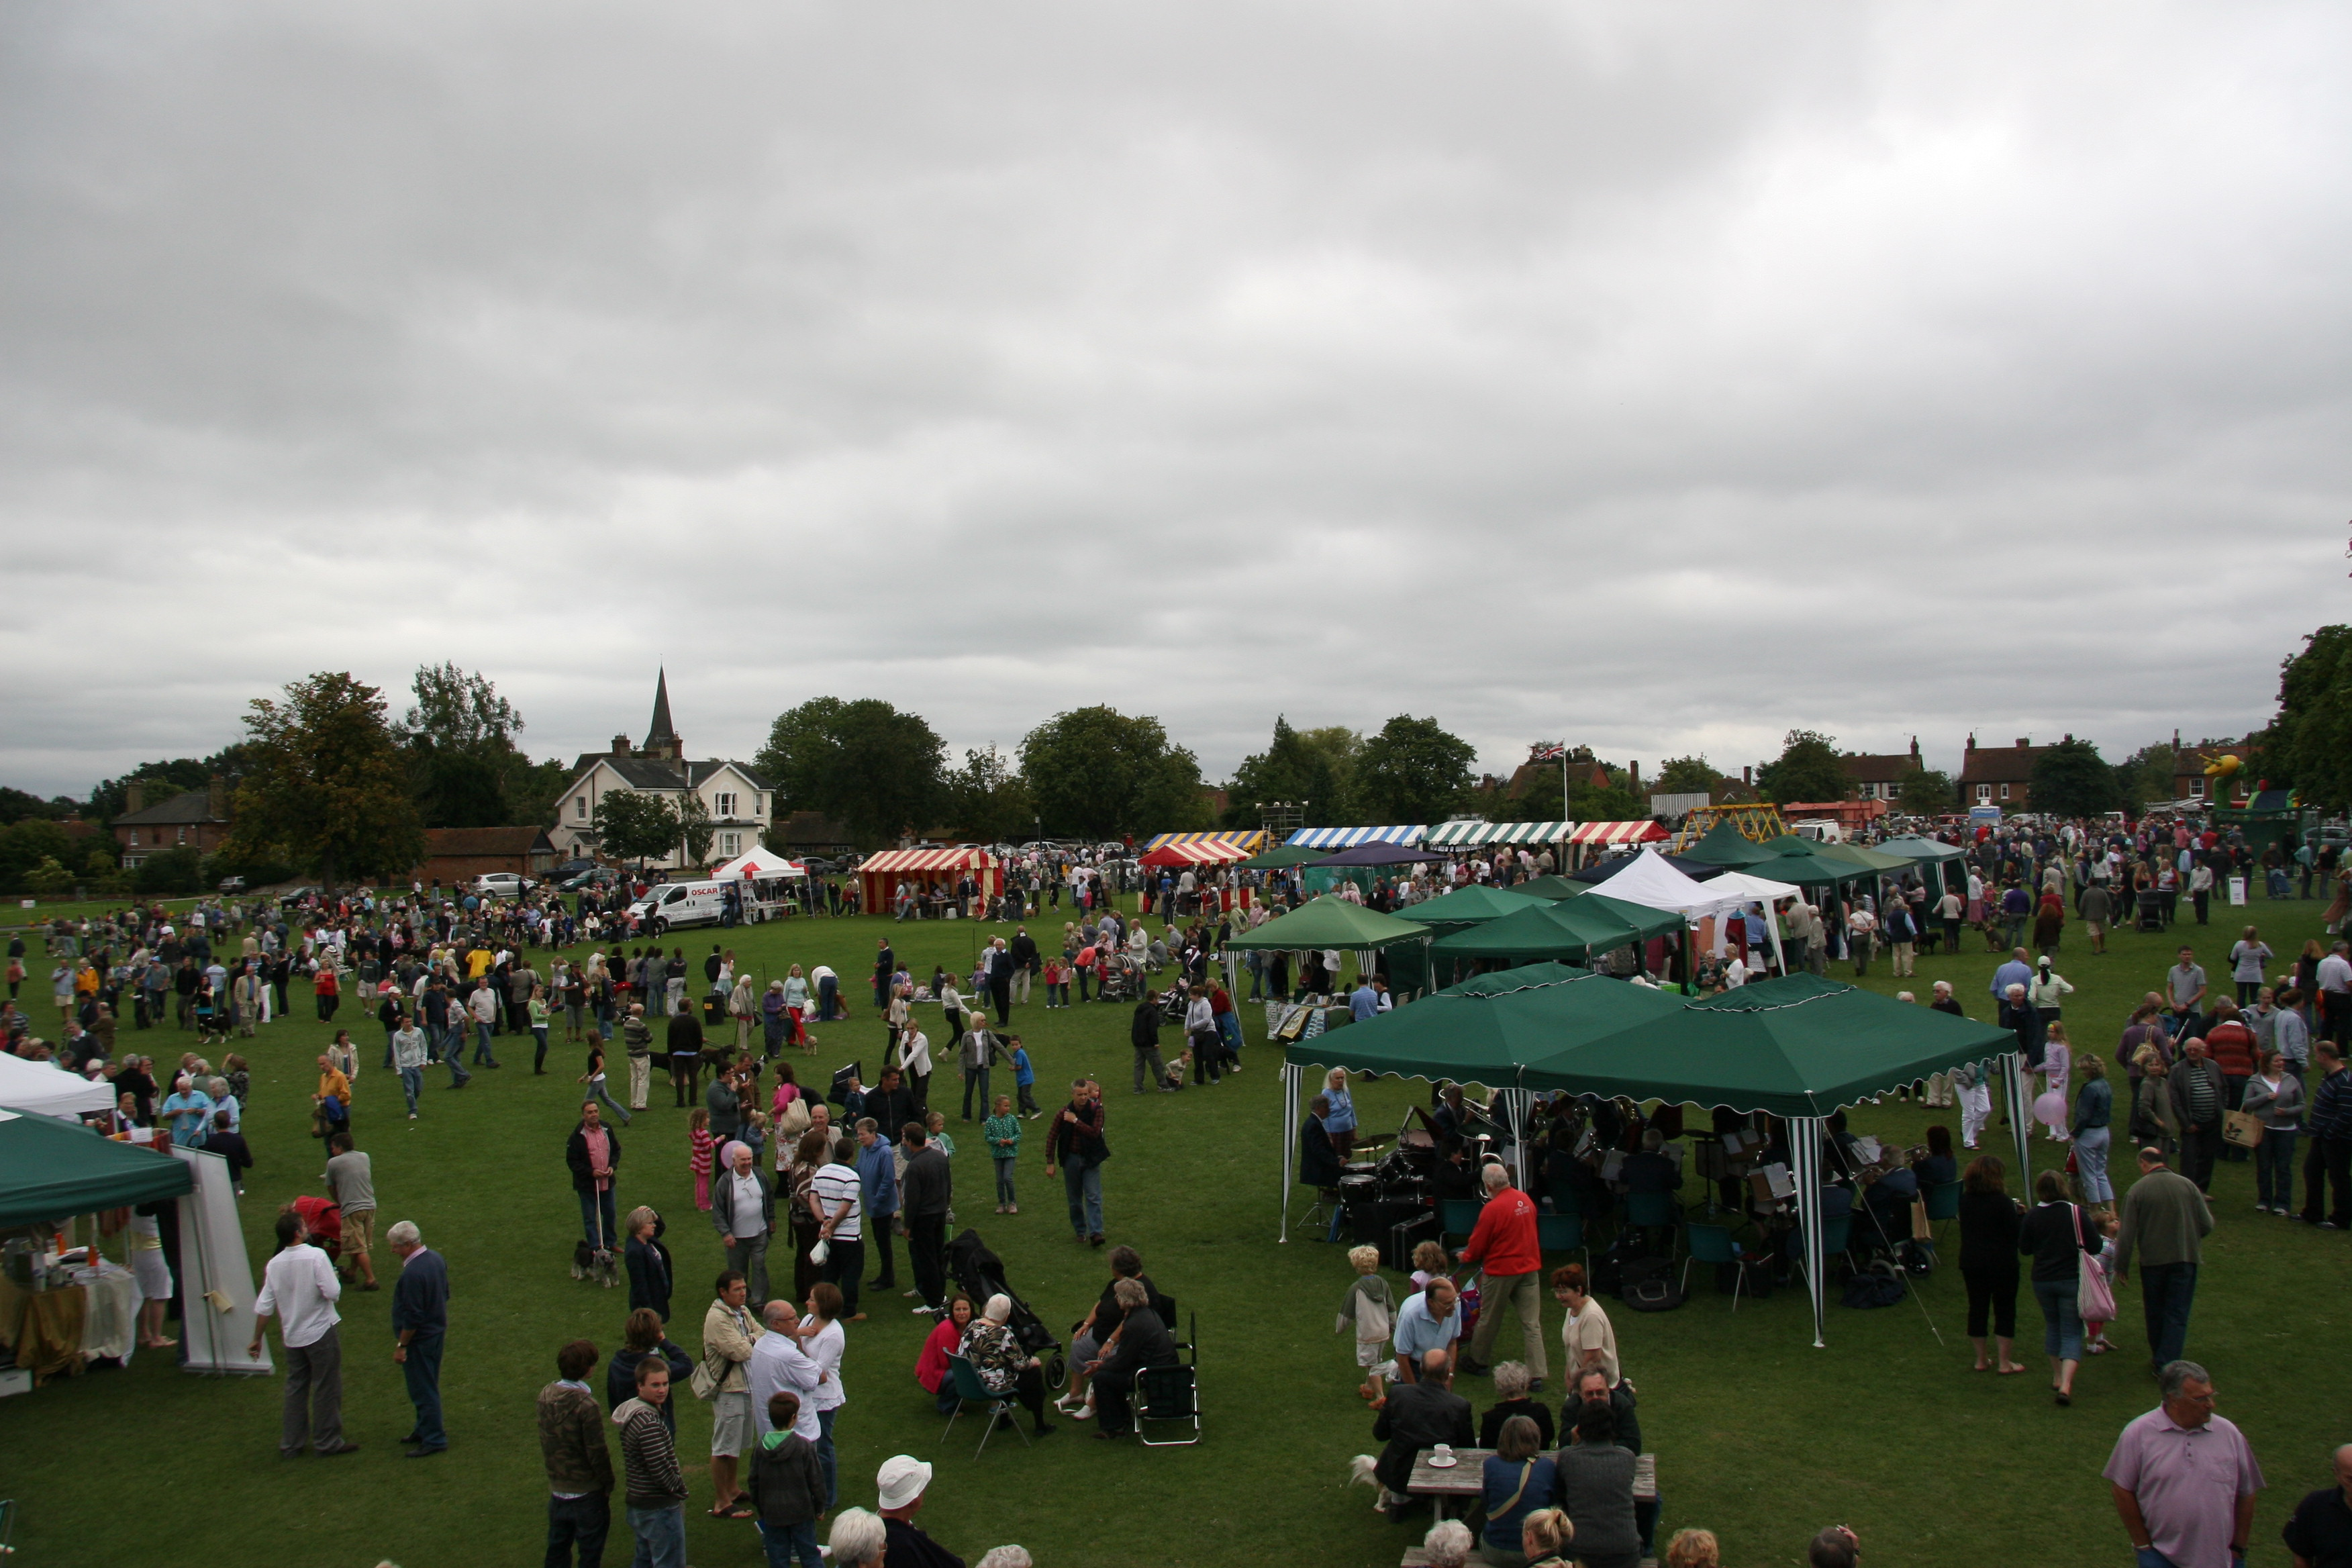 A busy August Fete with dog show and different activity stalls.